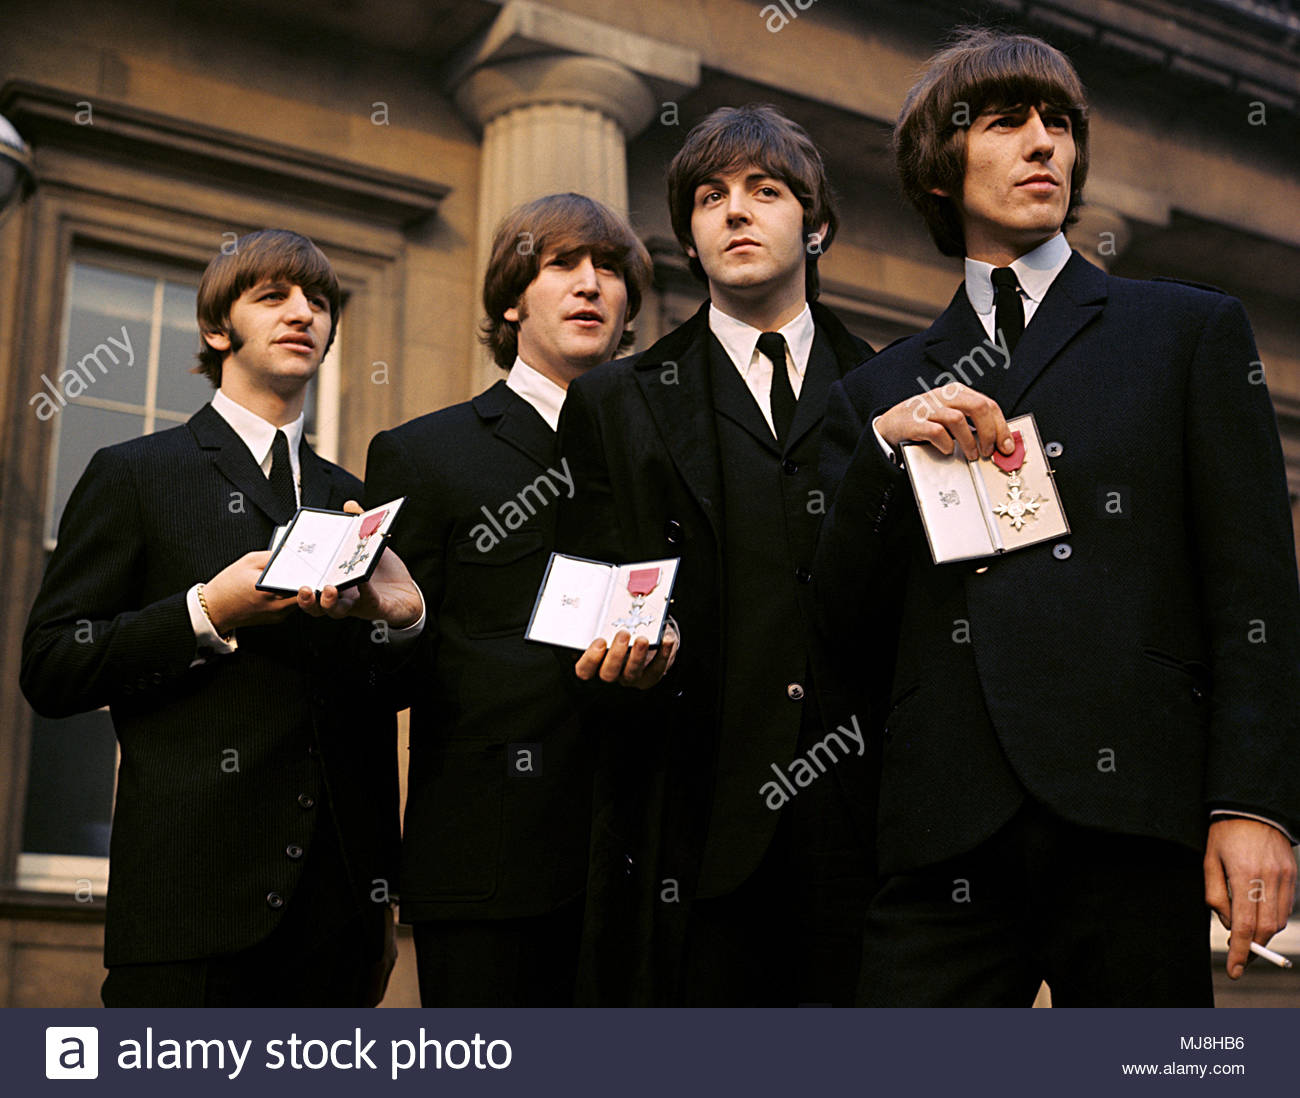 File Photo Dated 26 10 1965 Of Left To Right Ringo Starr John Lennon Paul McCartney And George Harrison The Beatles Holding Their MBEs